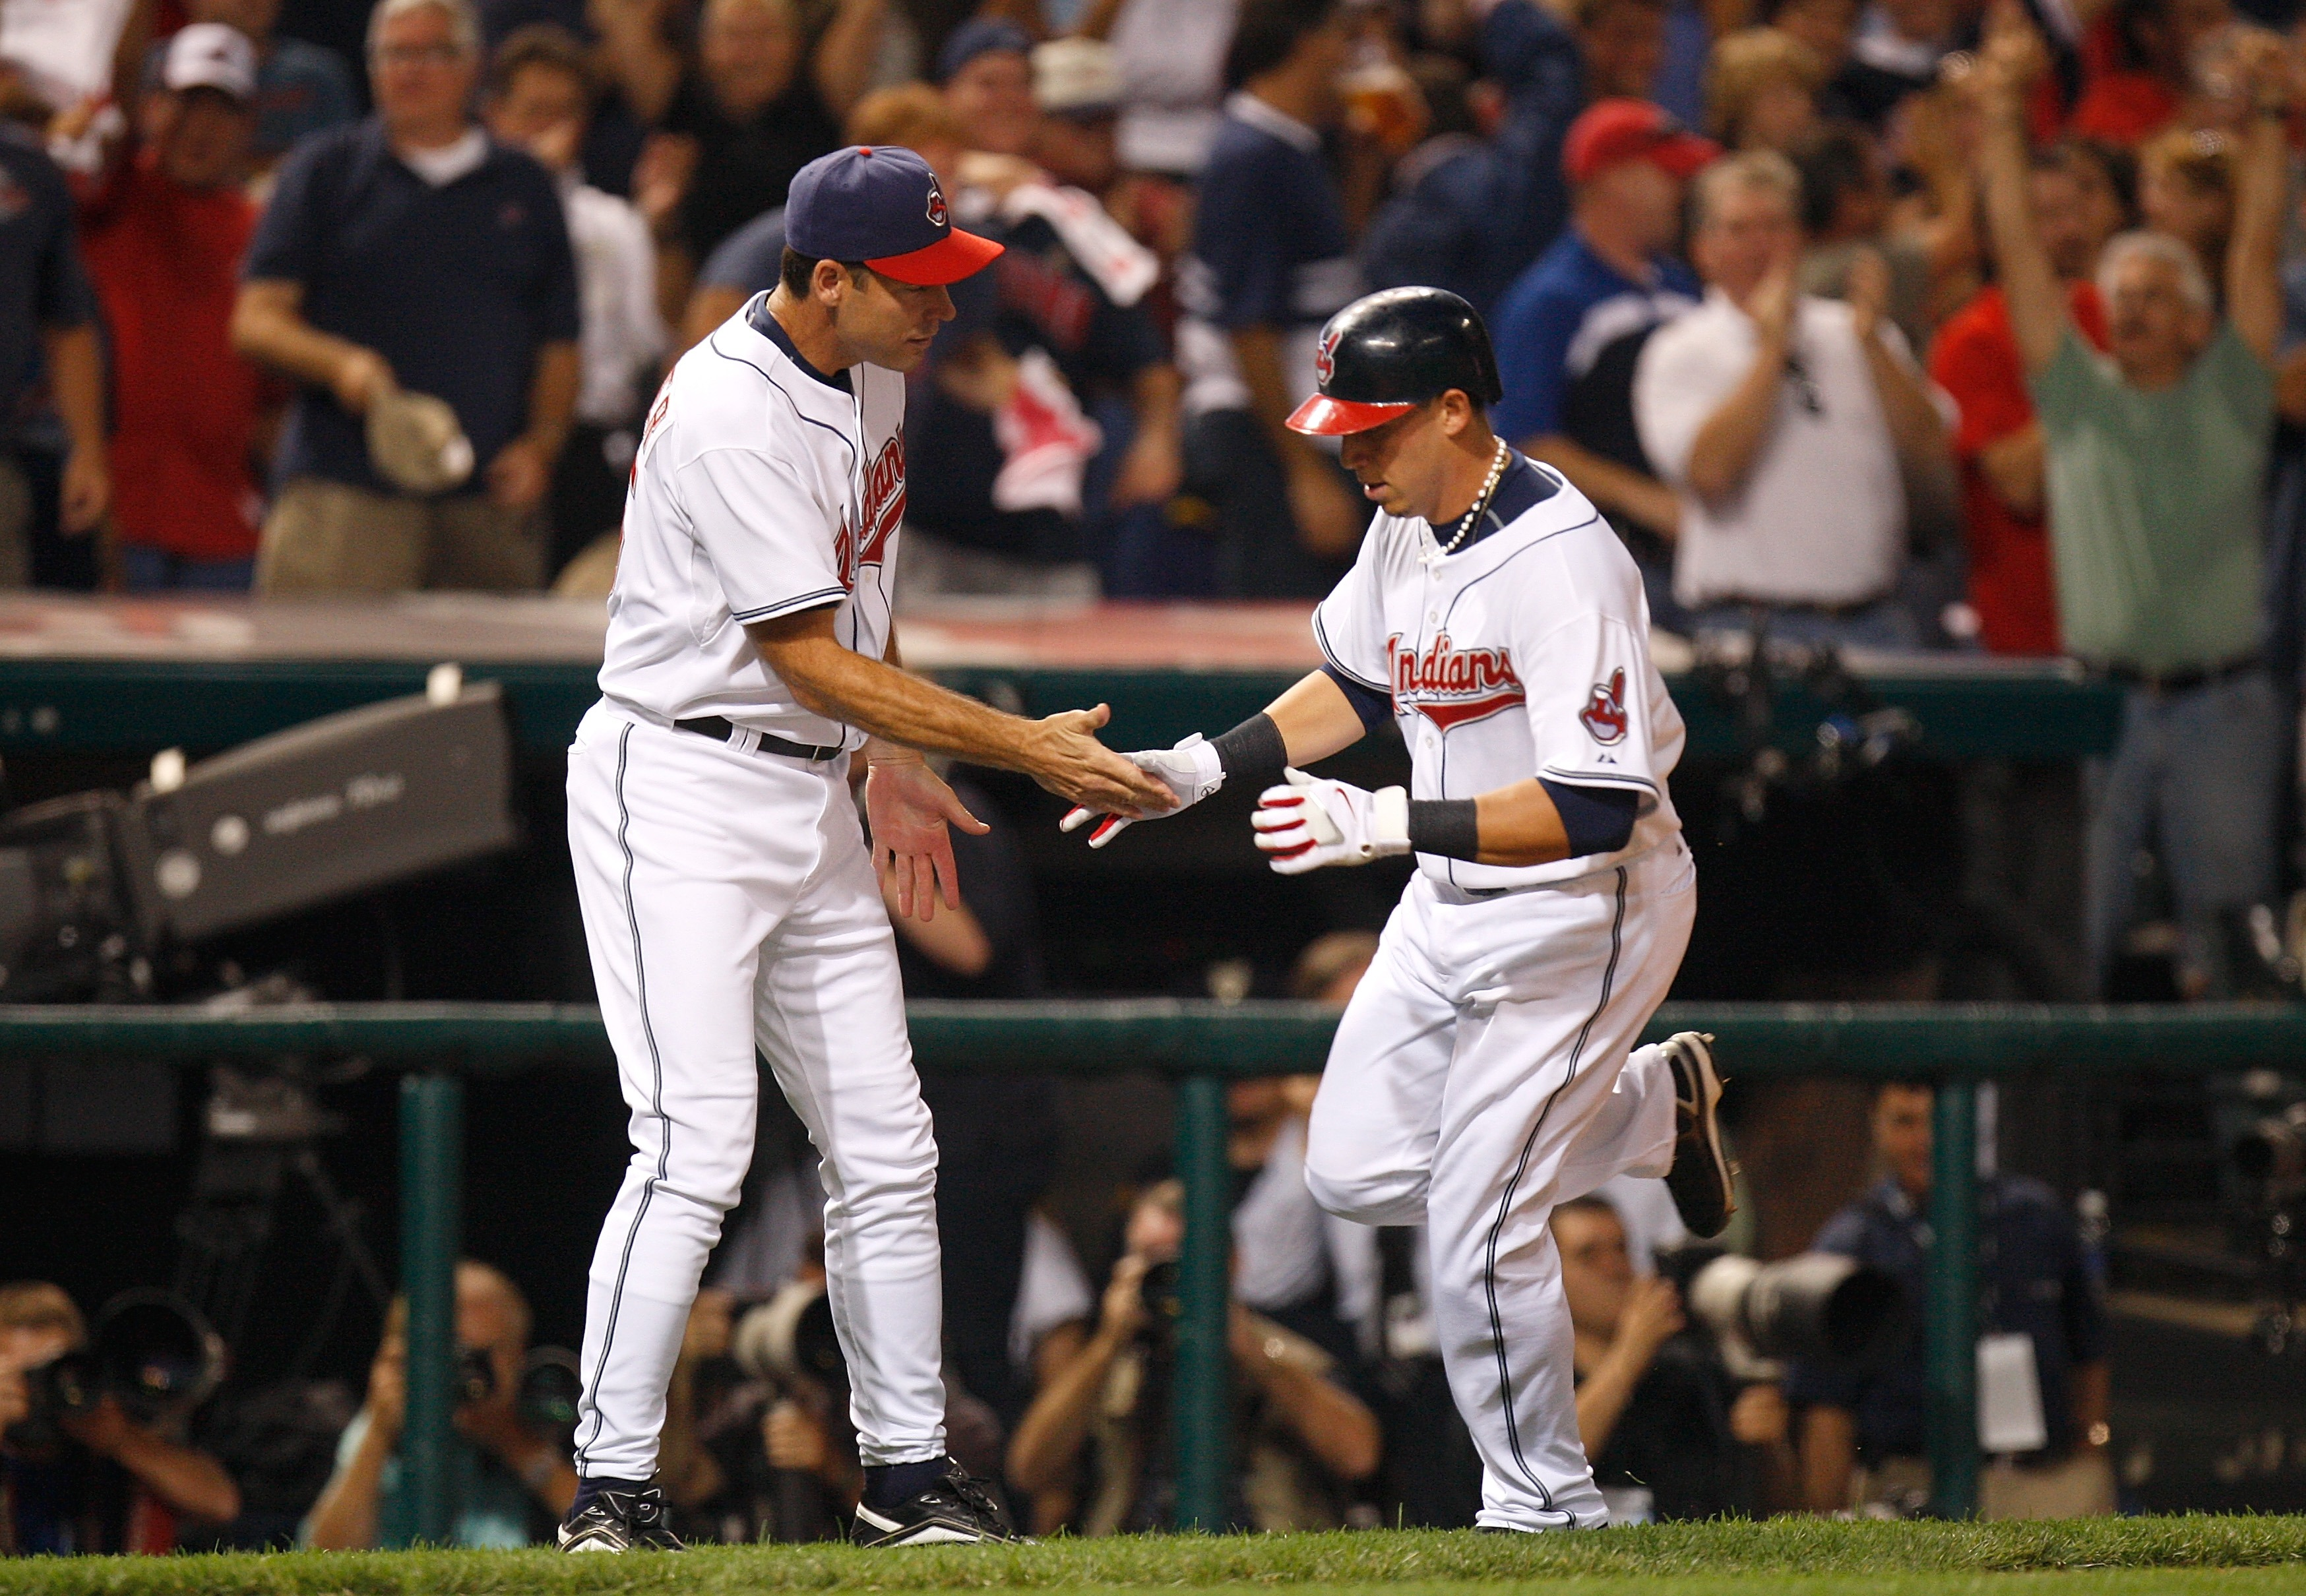 CLEVELAND - OCTOBER 04:  Asdrubal Cabera #13 of the Cleveland Indians is congratulated thirdbase coach Joel Skinner (R) as he heads to home plate after hitting a solo home run in the bottom of the third inning against the New York Yankees during Game One